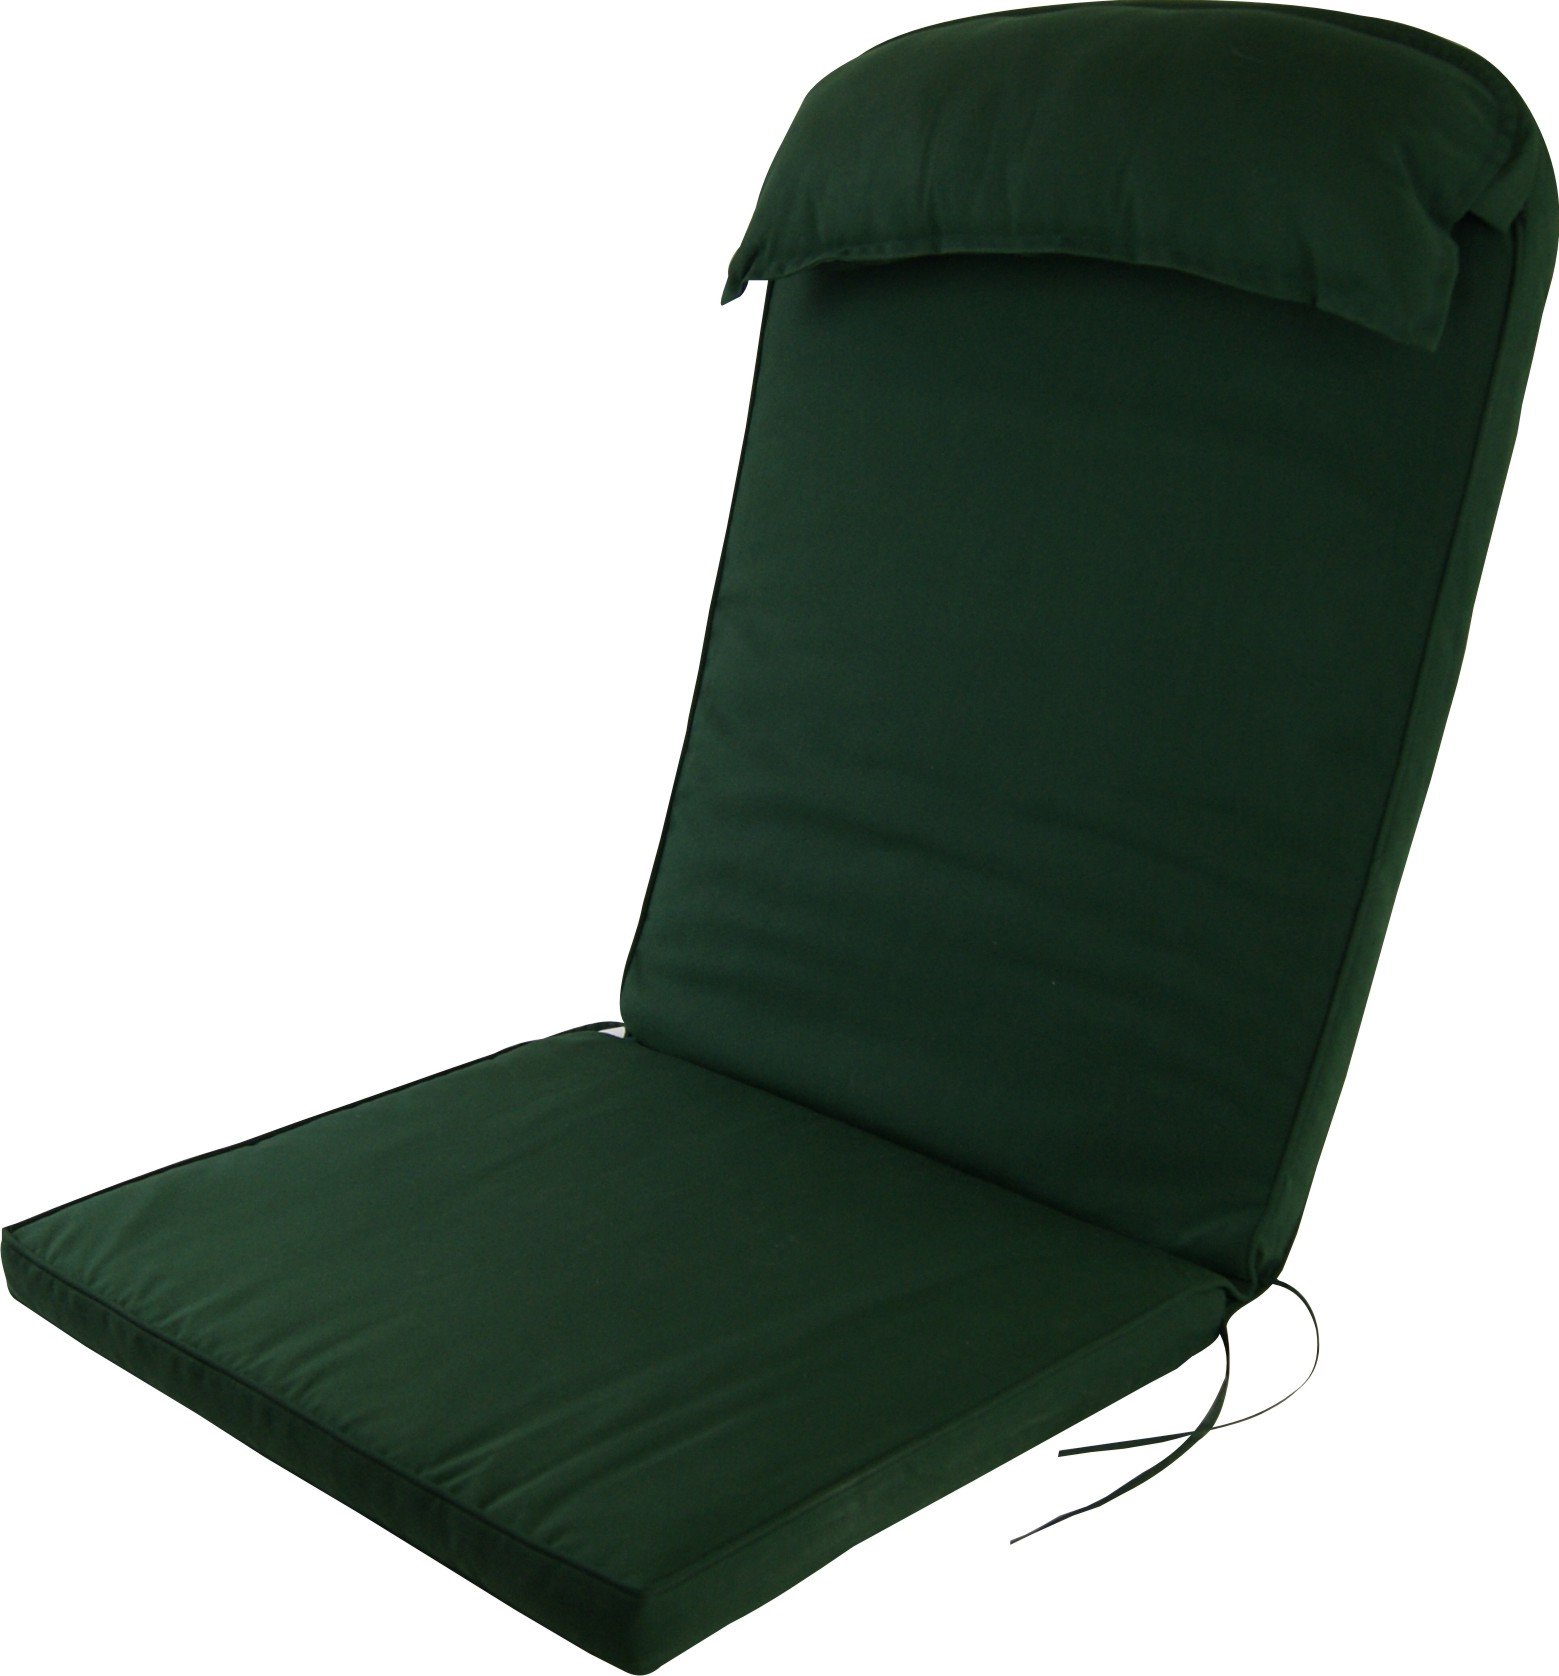 Plant Theatre Adirondack Chair Luxury High Back Cushion with Head Pillow in Evergreen by Plant Theatre